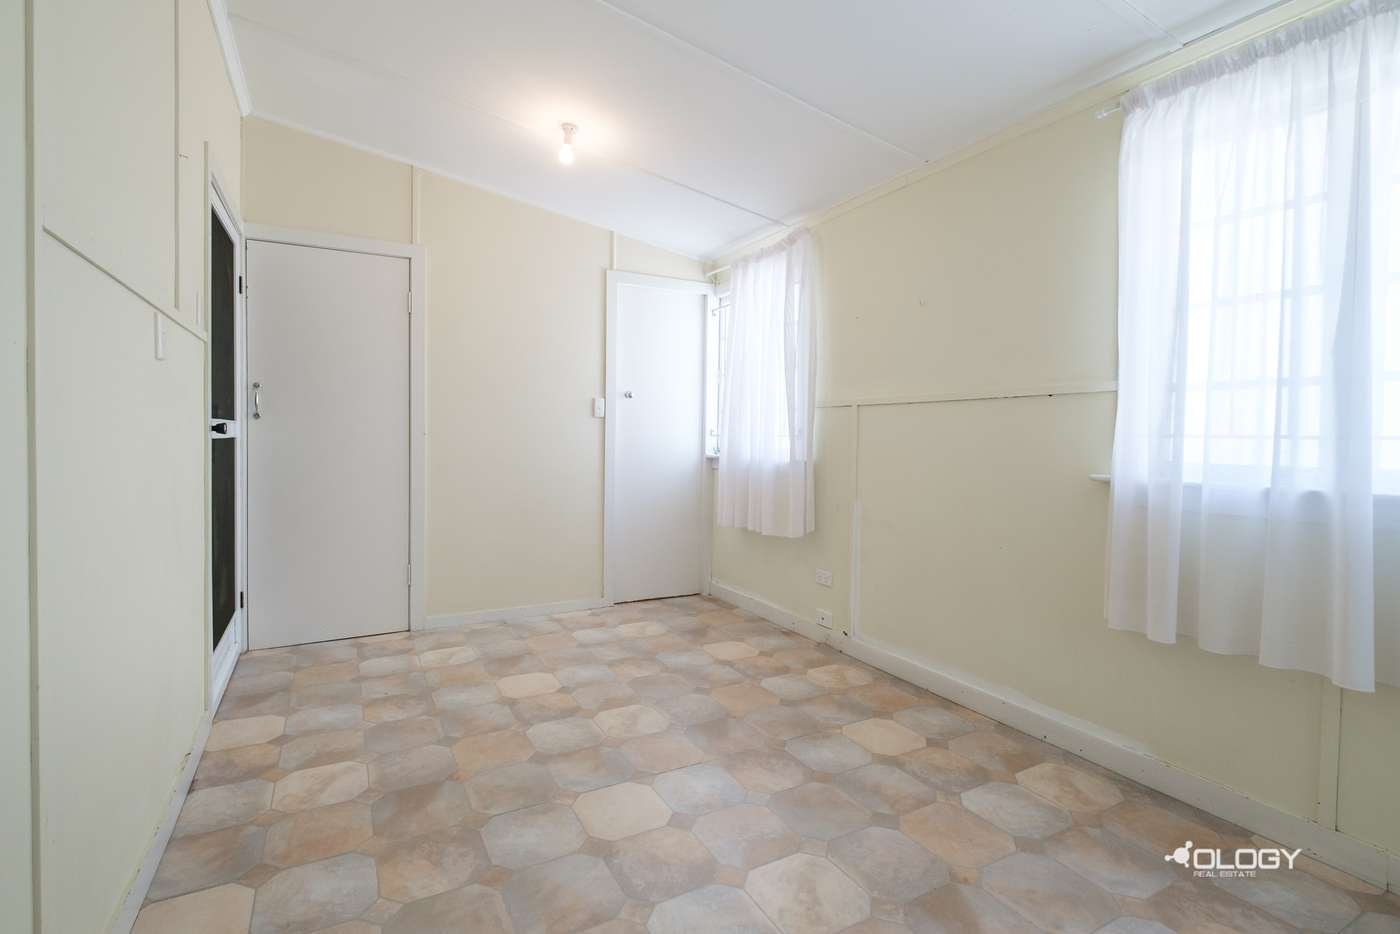 Sixth view of Homely house listing, 179 Horton Street, Koongal QLD 4701